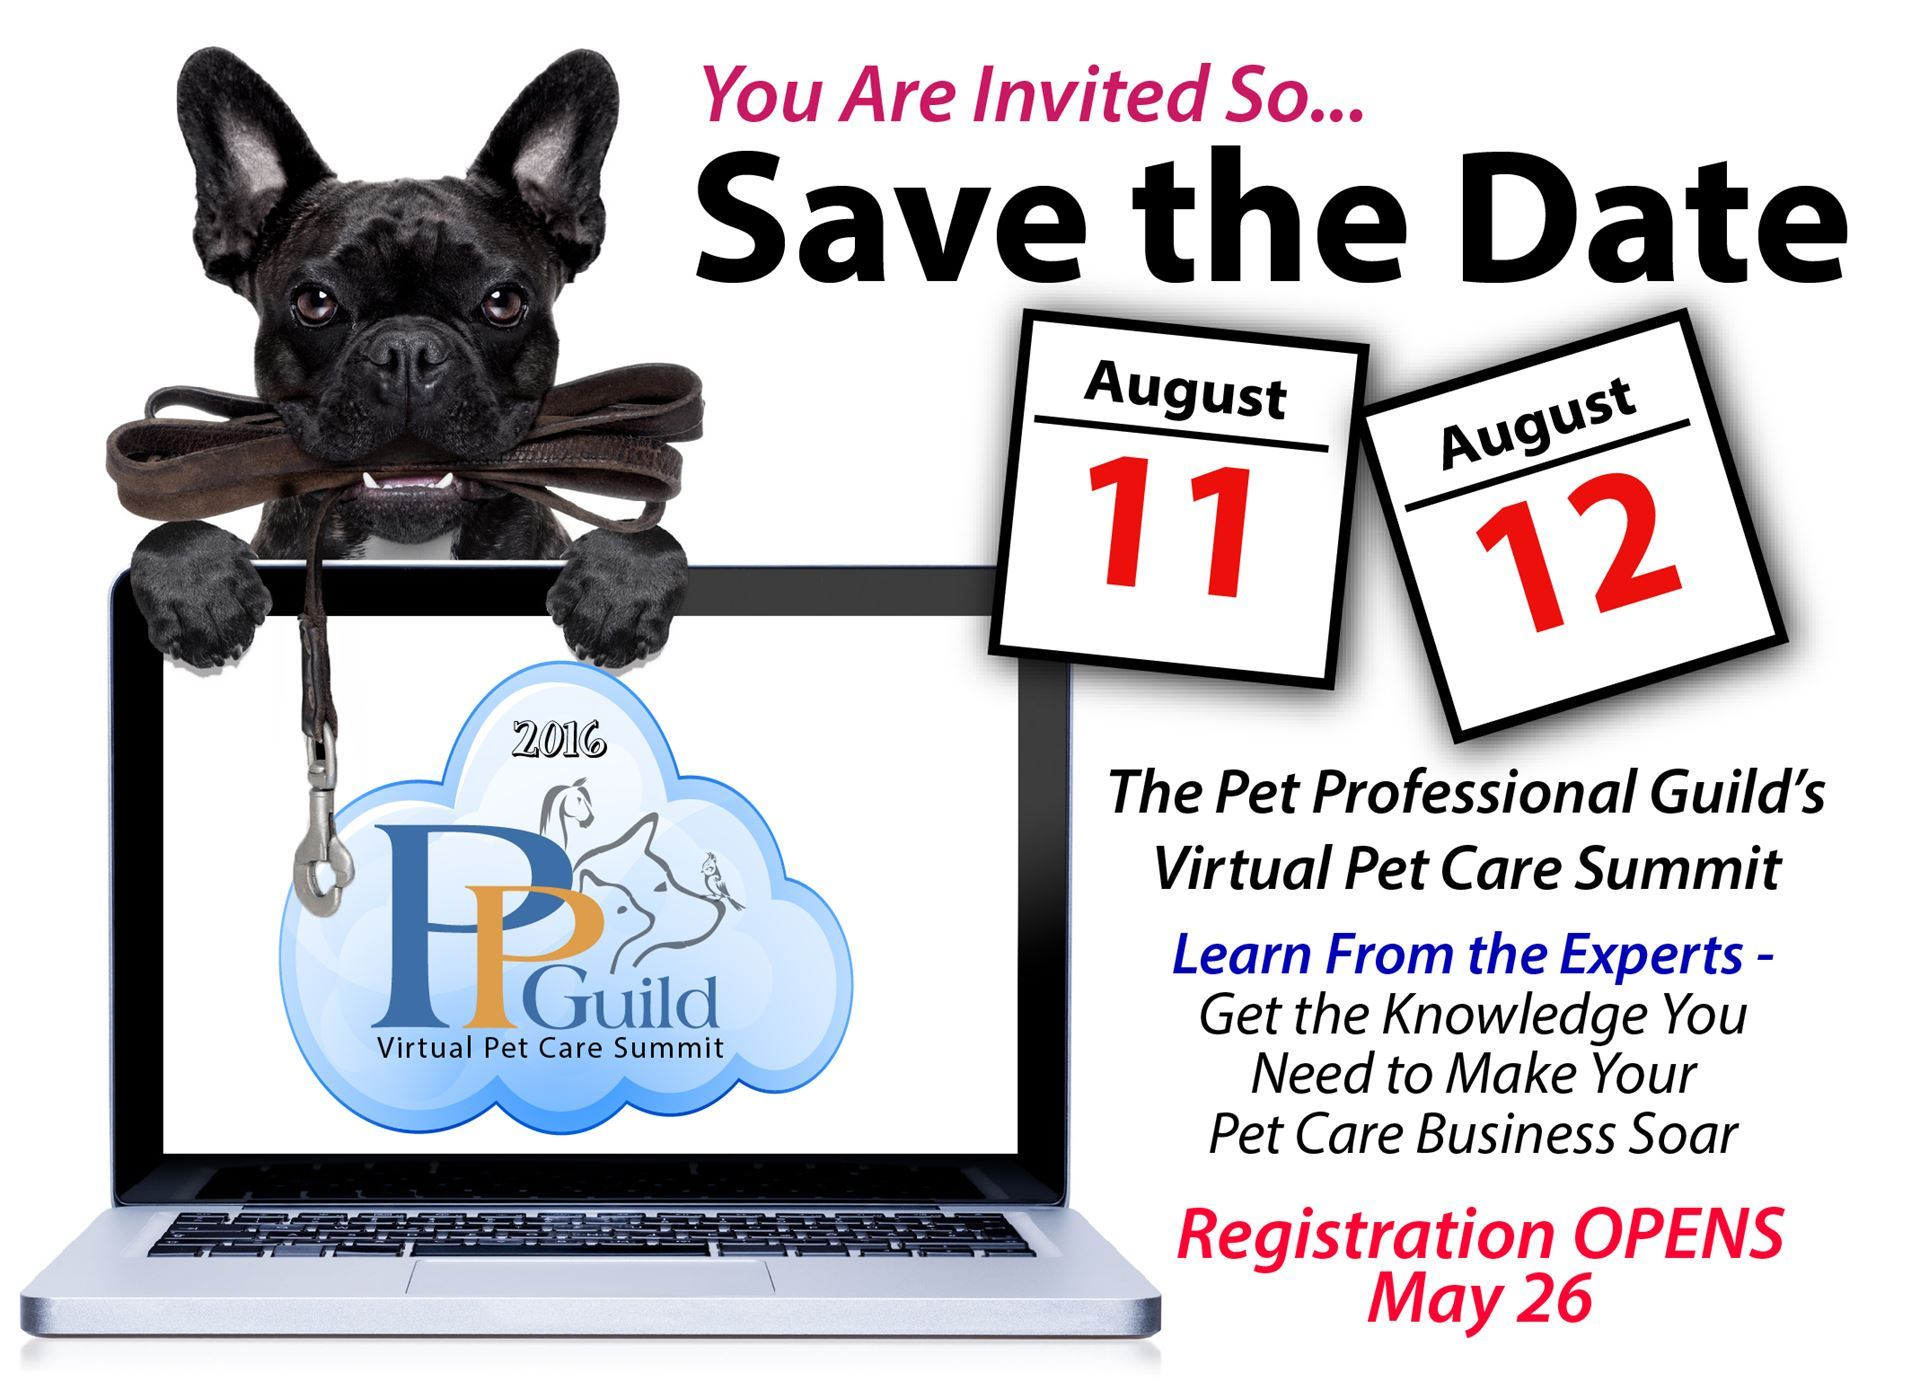 Your 2016 Virtual Pet Care Summit